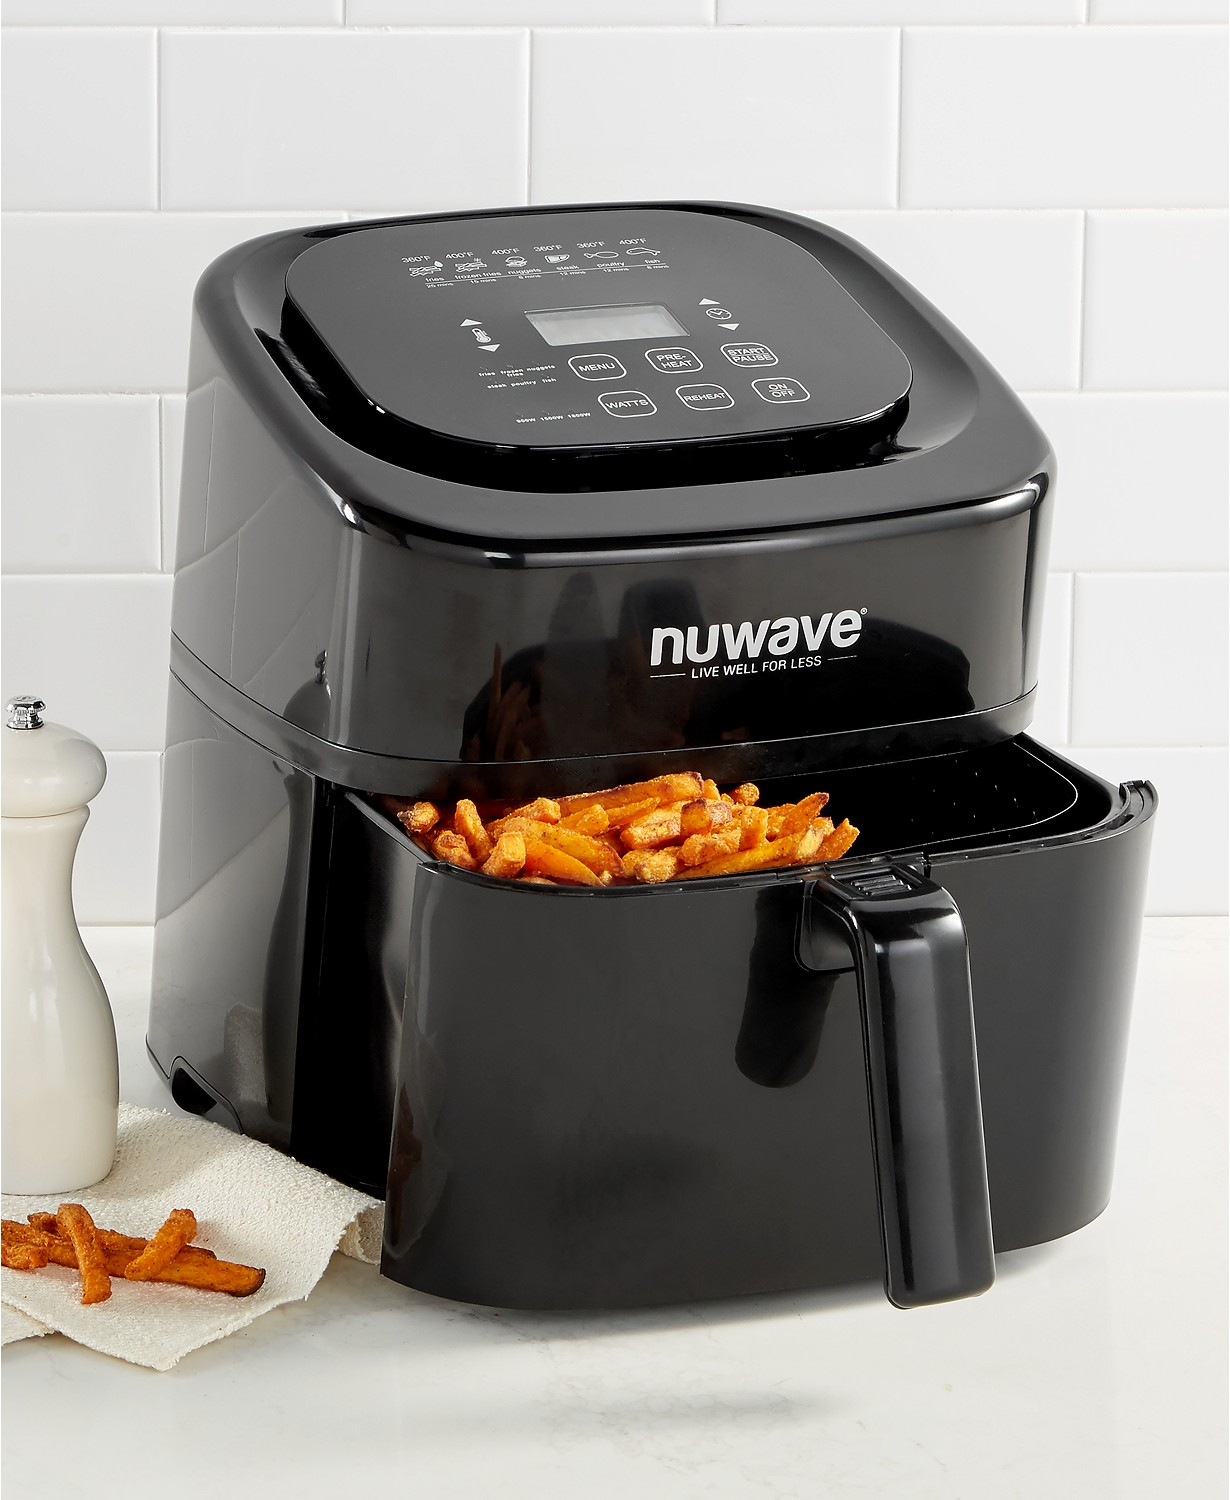 Black Macy's NuWave Air Fryer filled with cooked French fries